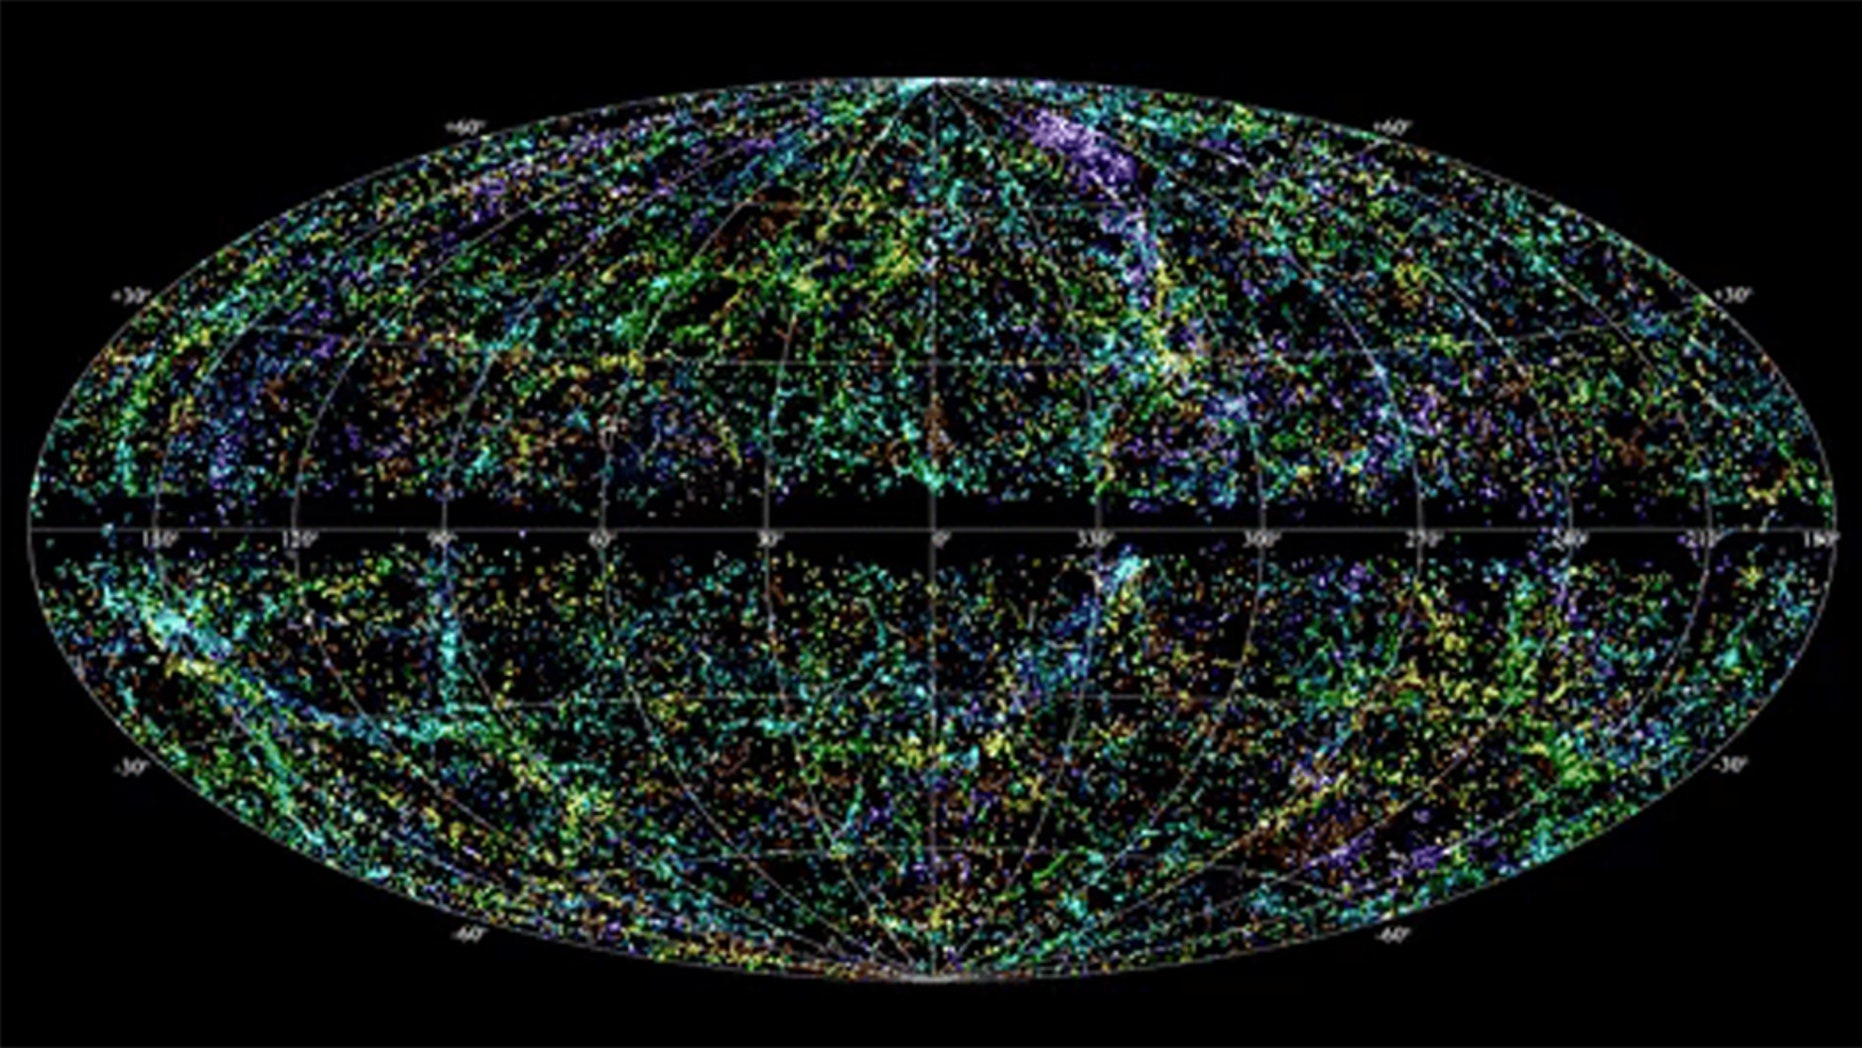 An animation shows the random appearance of fast radio bursts (FRBs) across the sky. Astronomers have discovered about 85 since 2007, and pinpointed two of them. Credit: NRAO Outreach/T. Jarrett (IPAC/Caltech); B. Saxton, NRAO/AUI/NSF